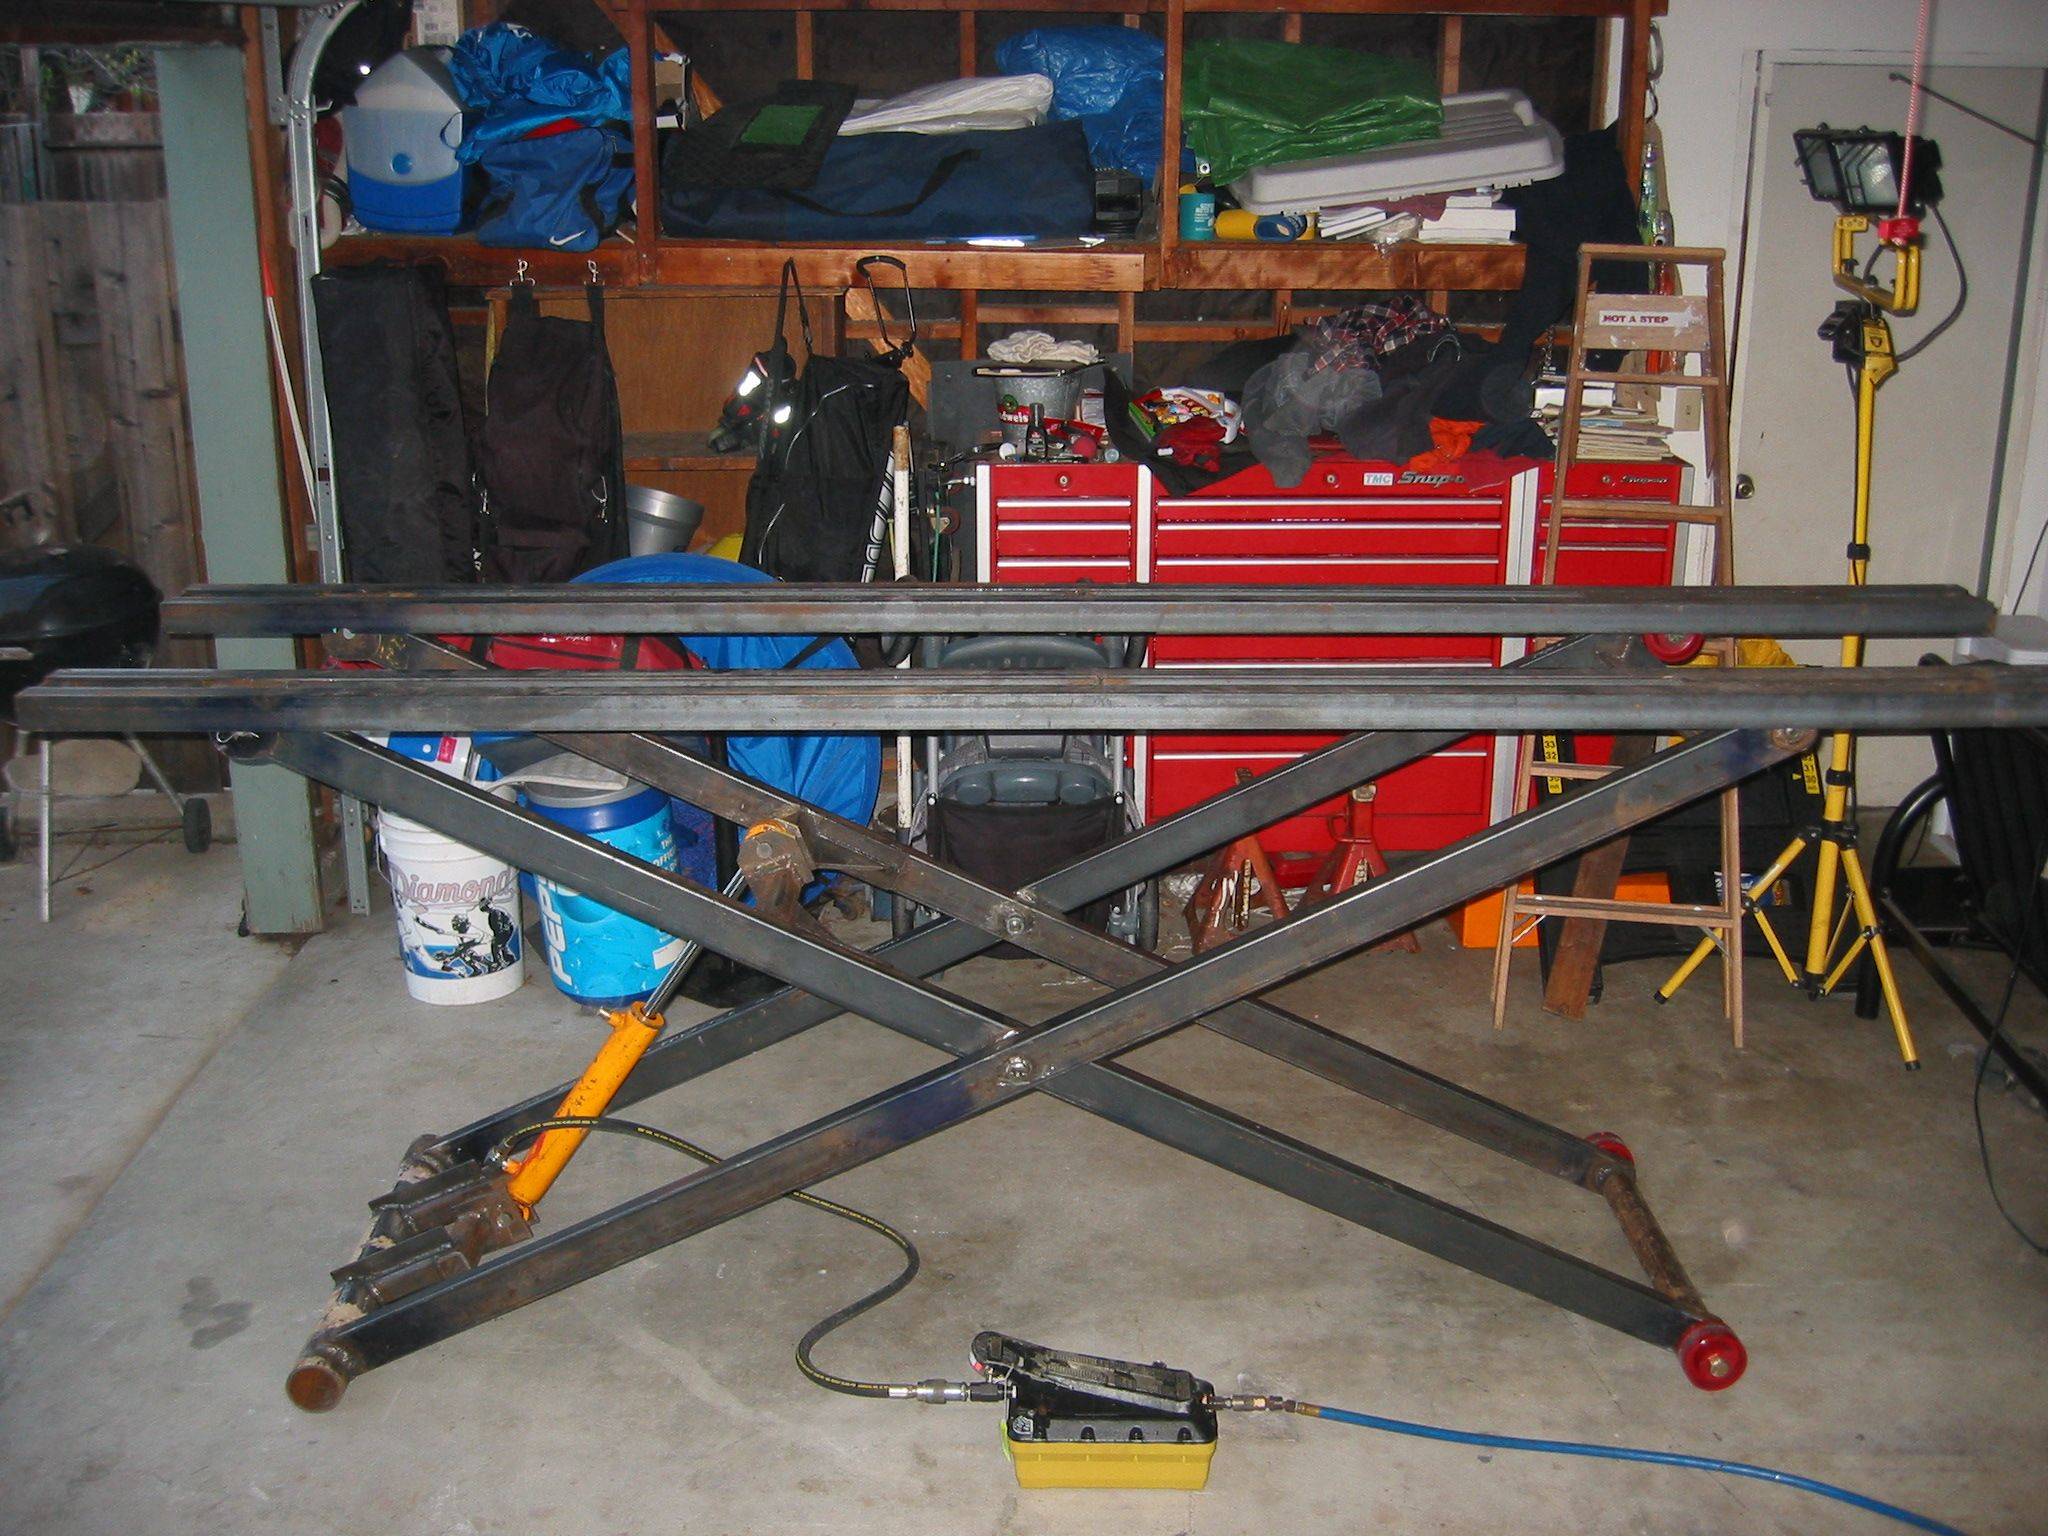 Best ideas about DIY Motorbike Lift . Save or Pin diy lift table Google Search Now.